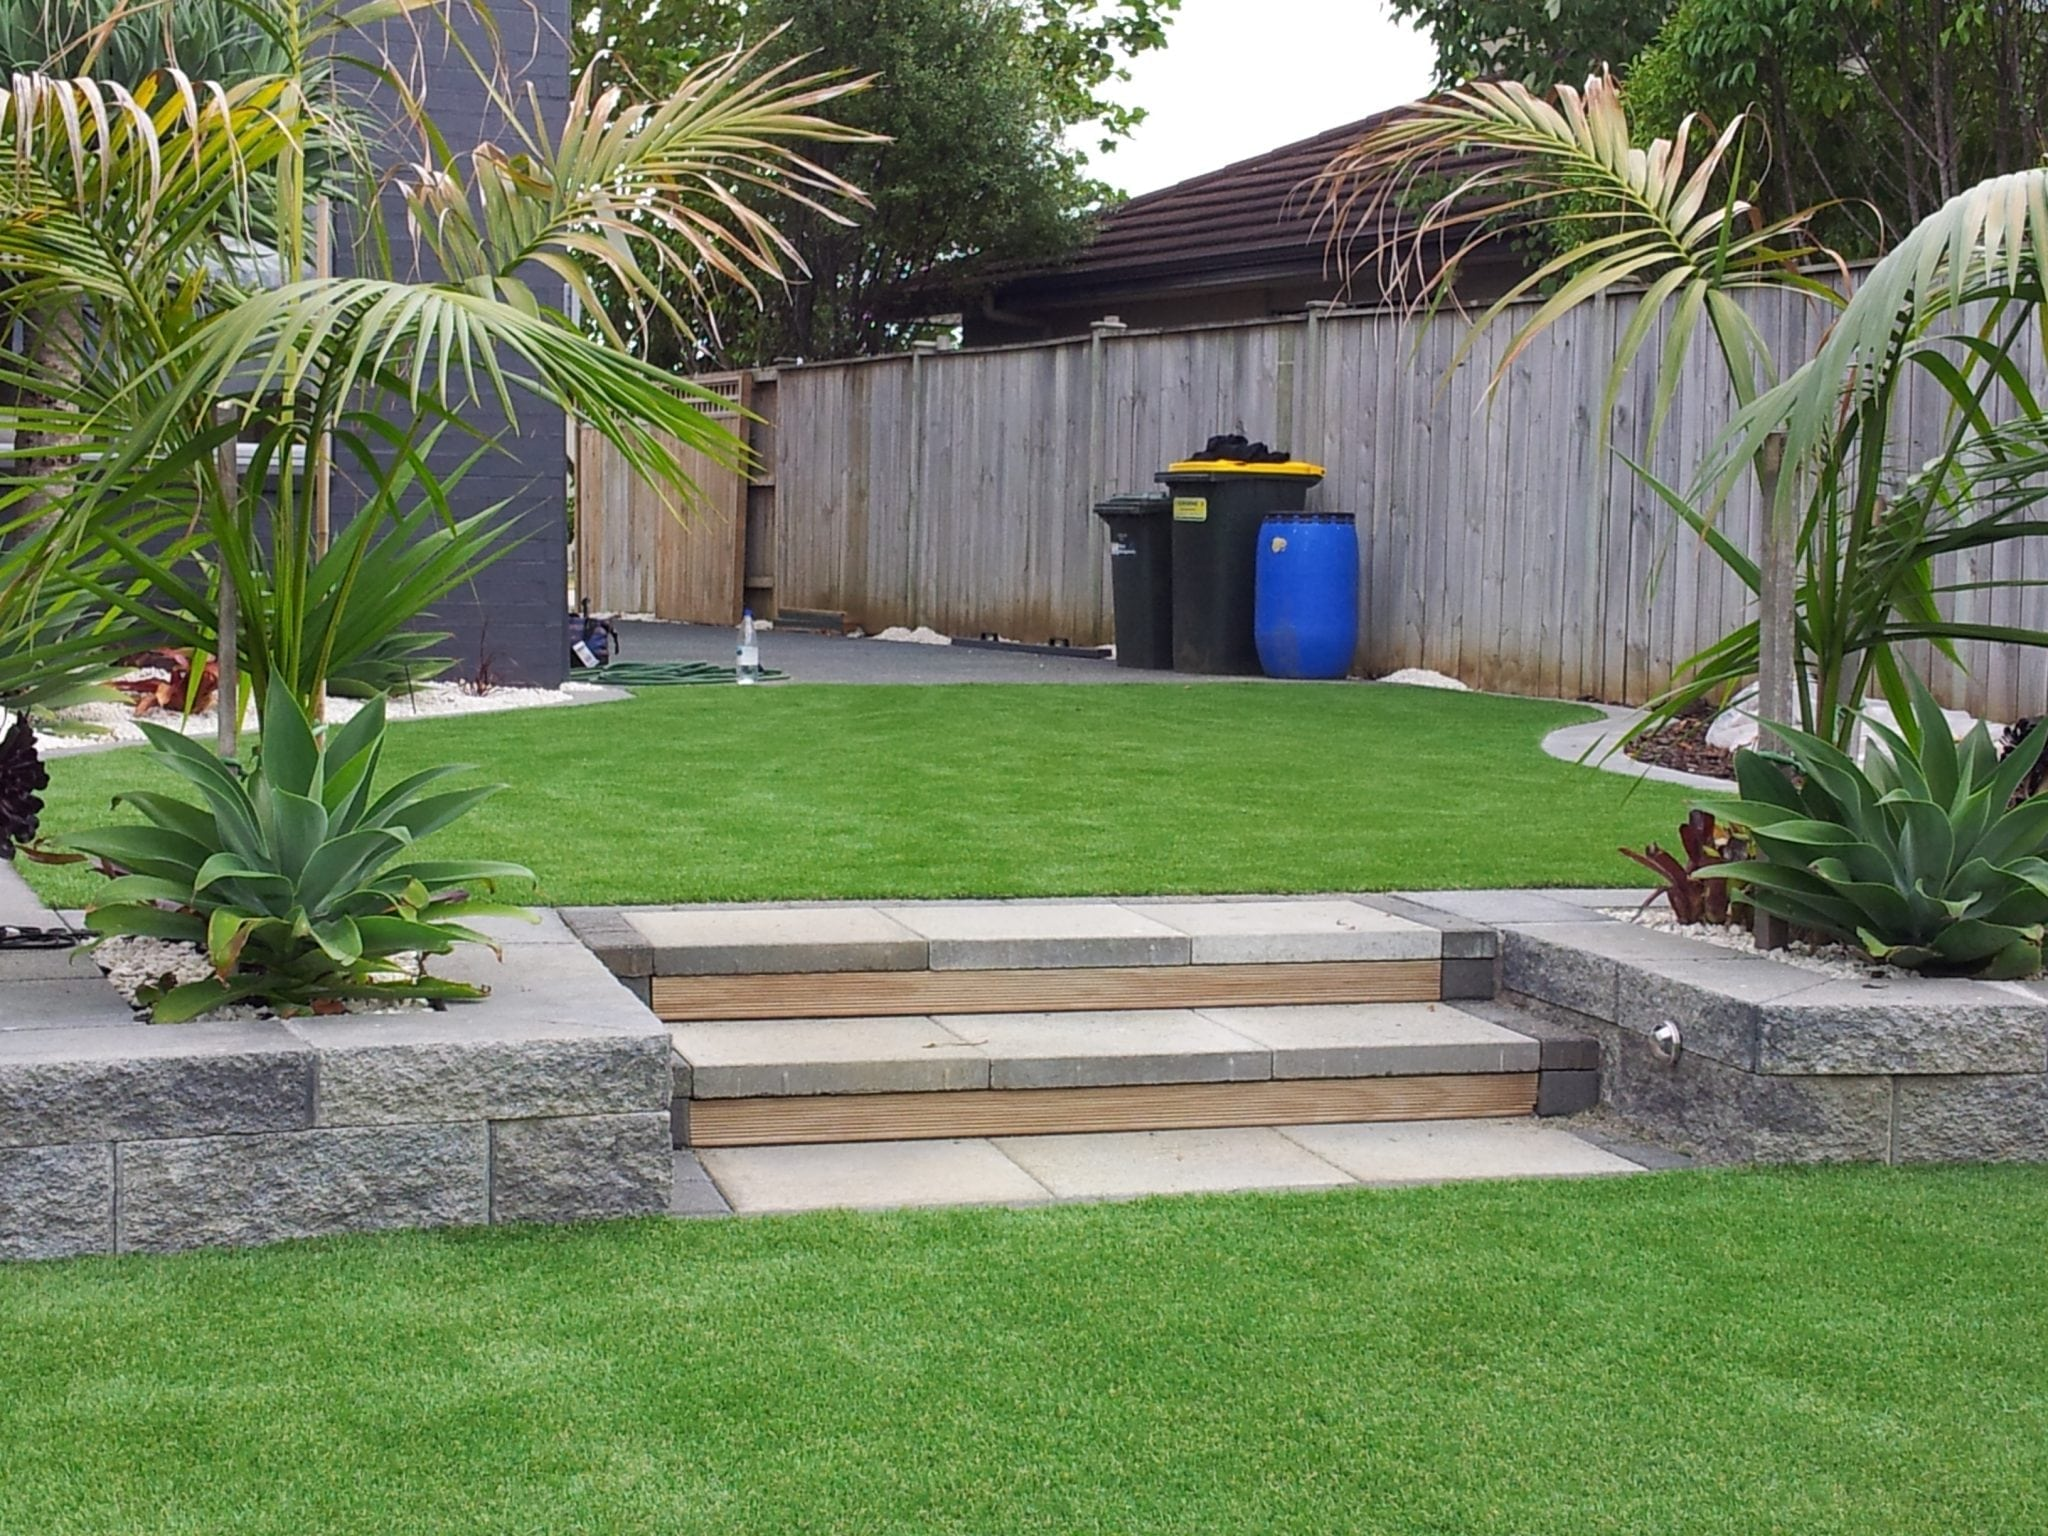 Teamturf artificial turf surfaces for sport, play and home New Zealand home lawn 1